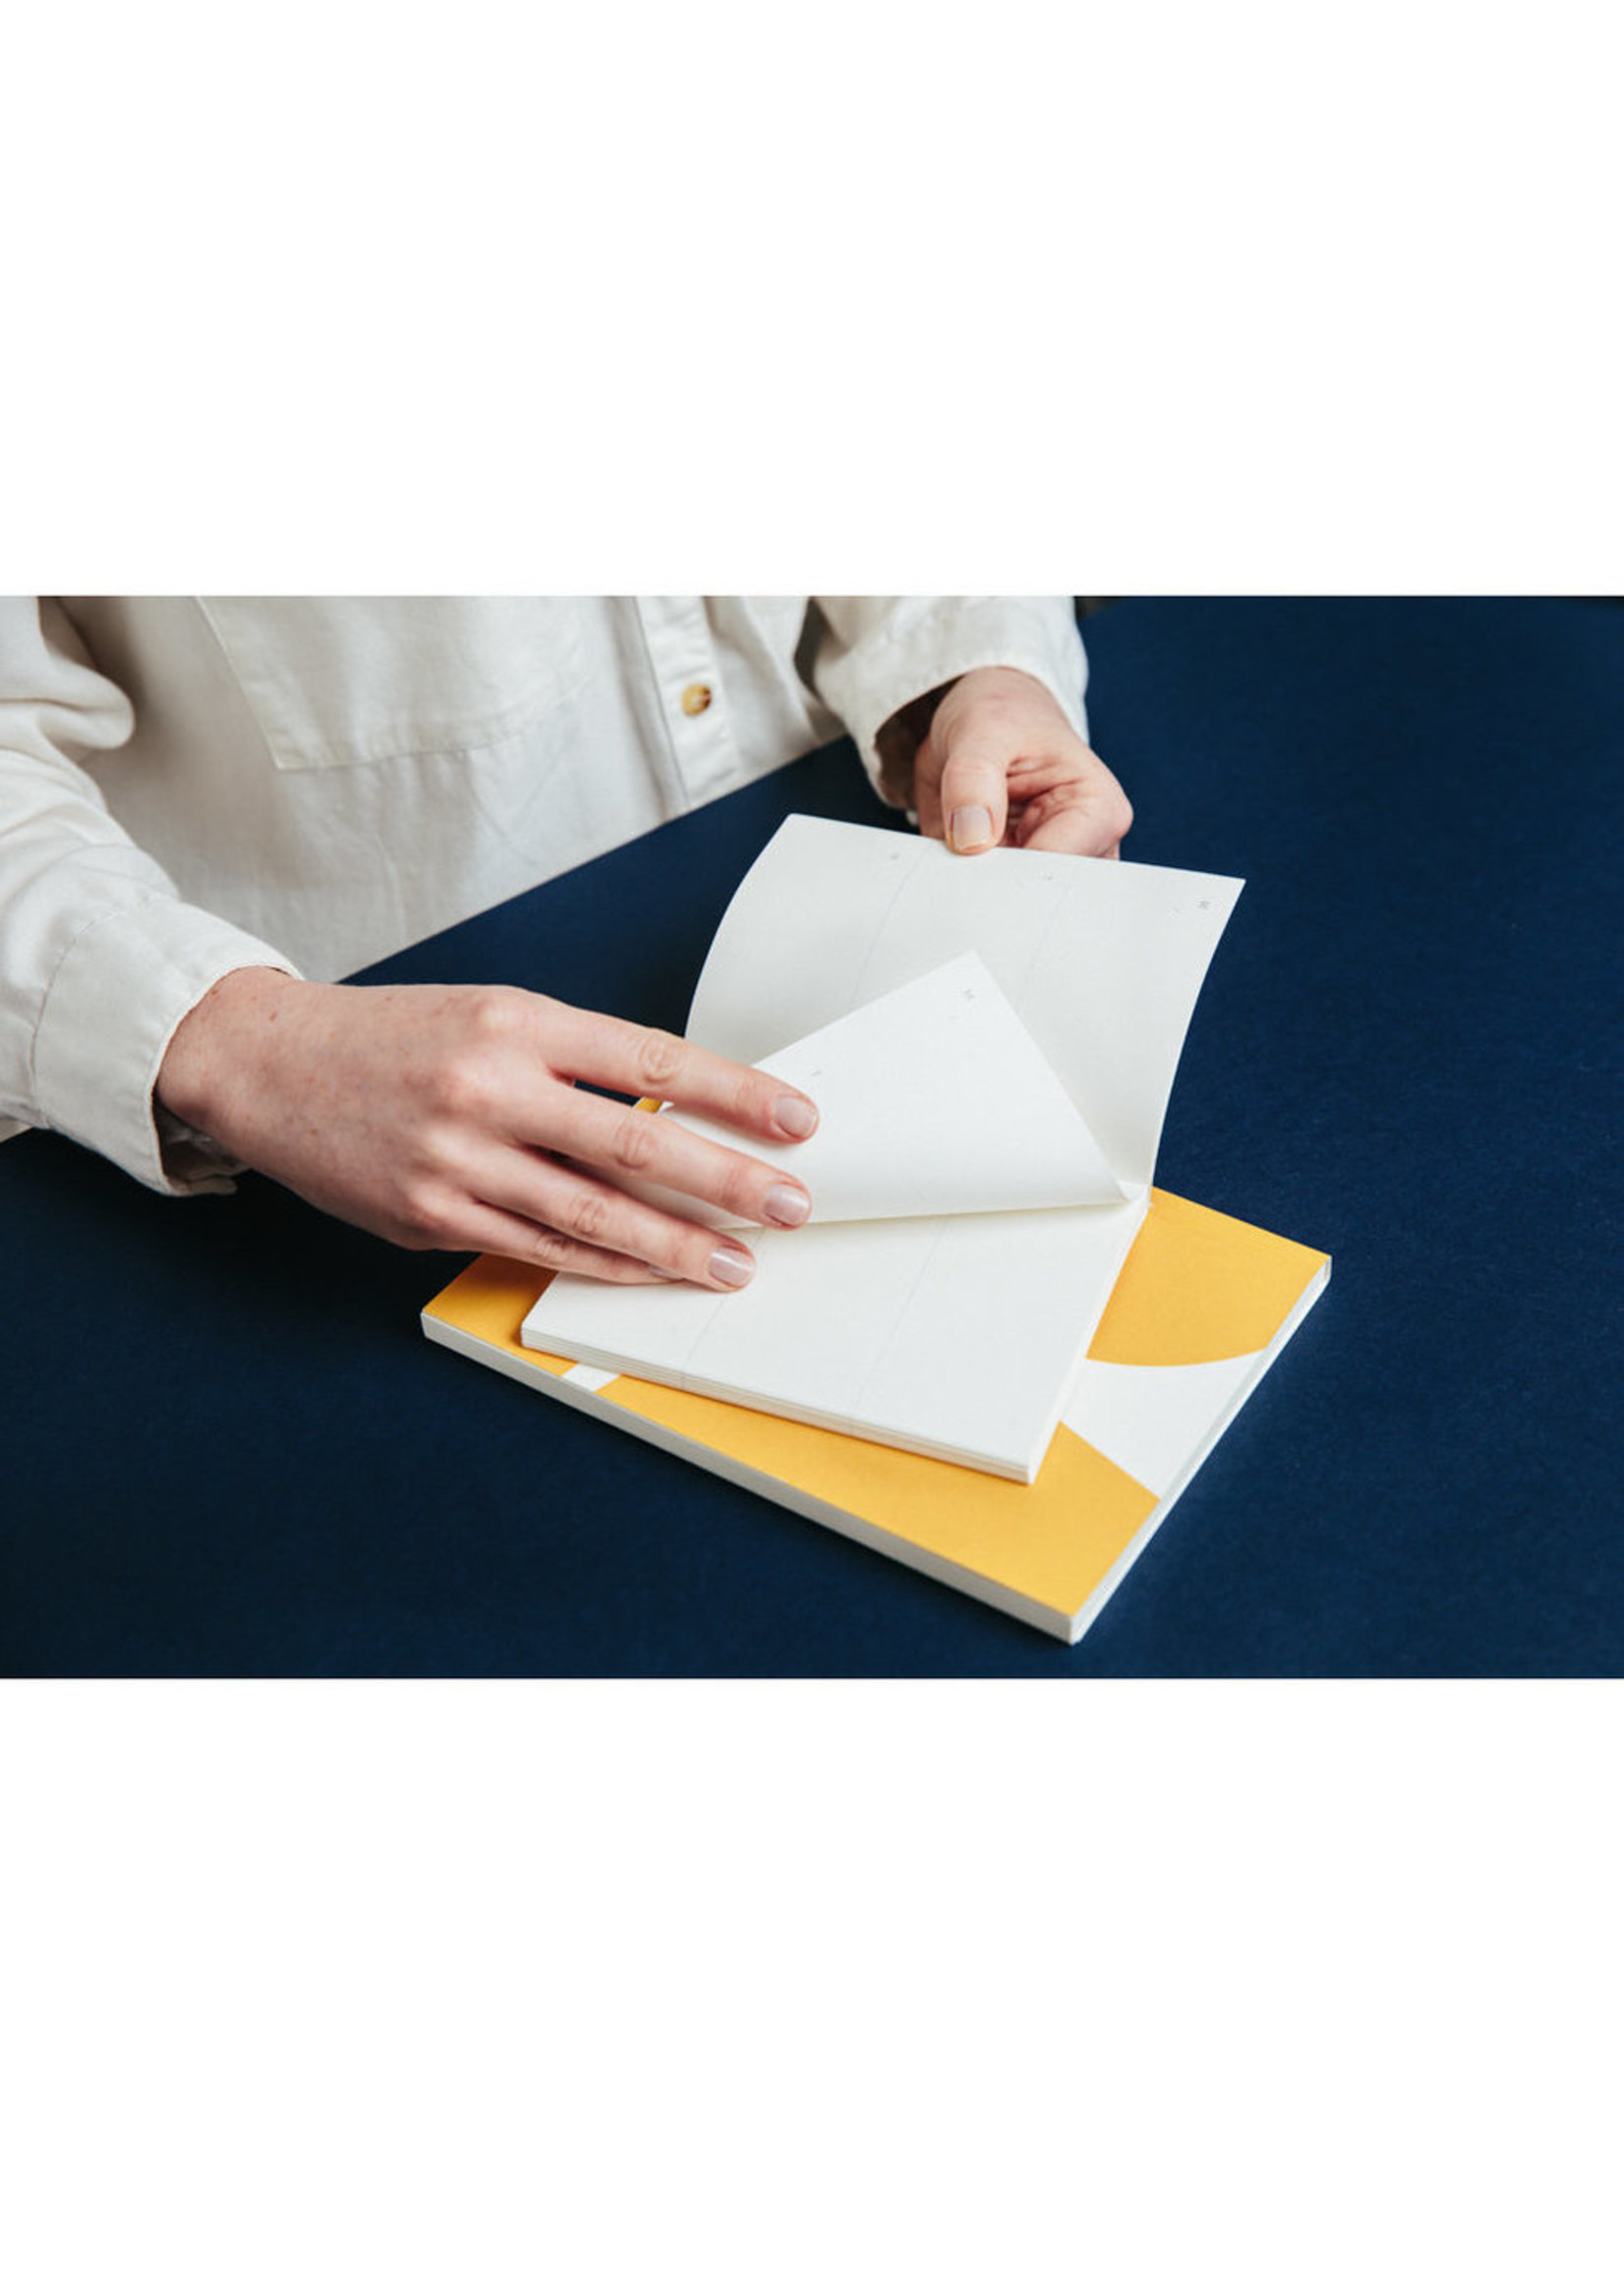 Ola Ola, Limited Edition Pocket Layflat Notebook, Blocks Print in Mustard / Plain Pages